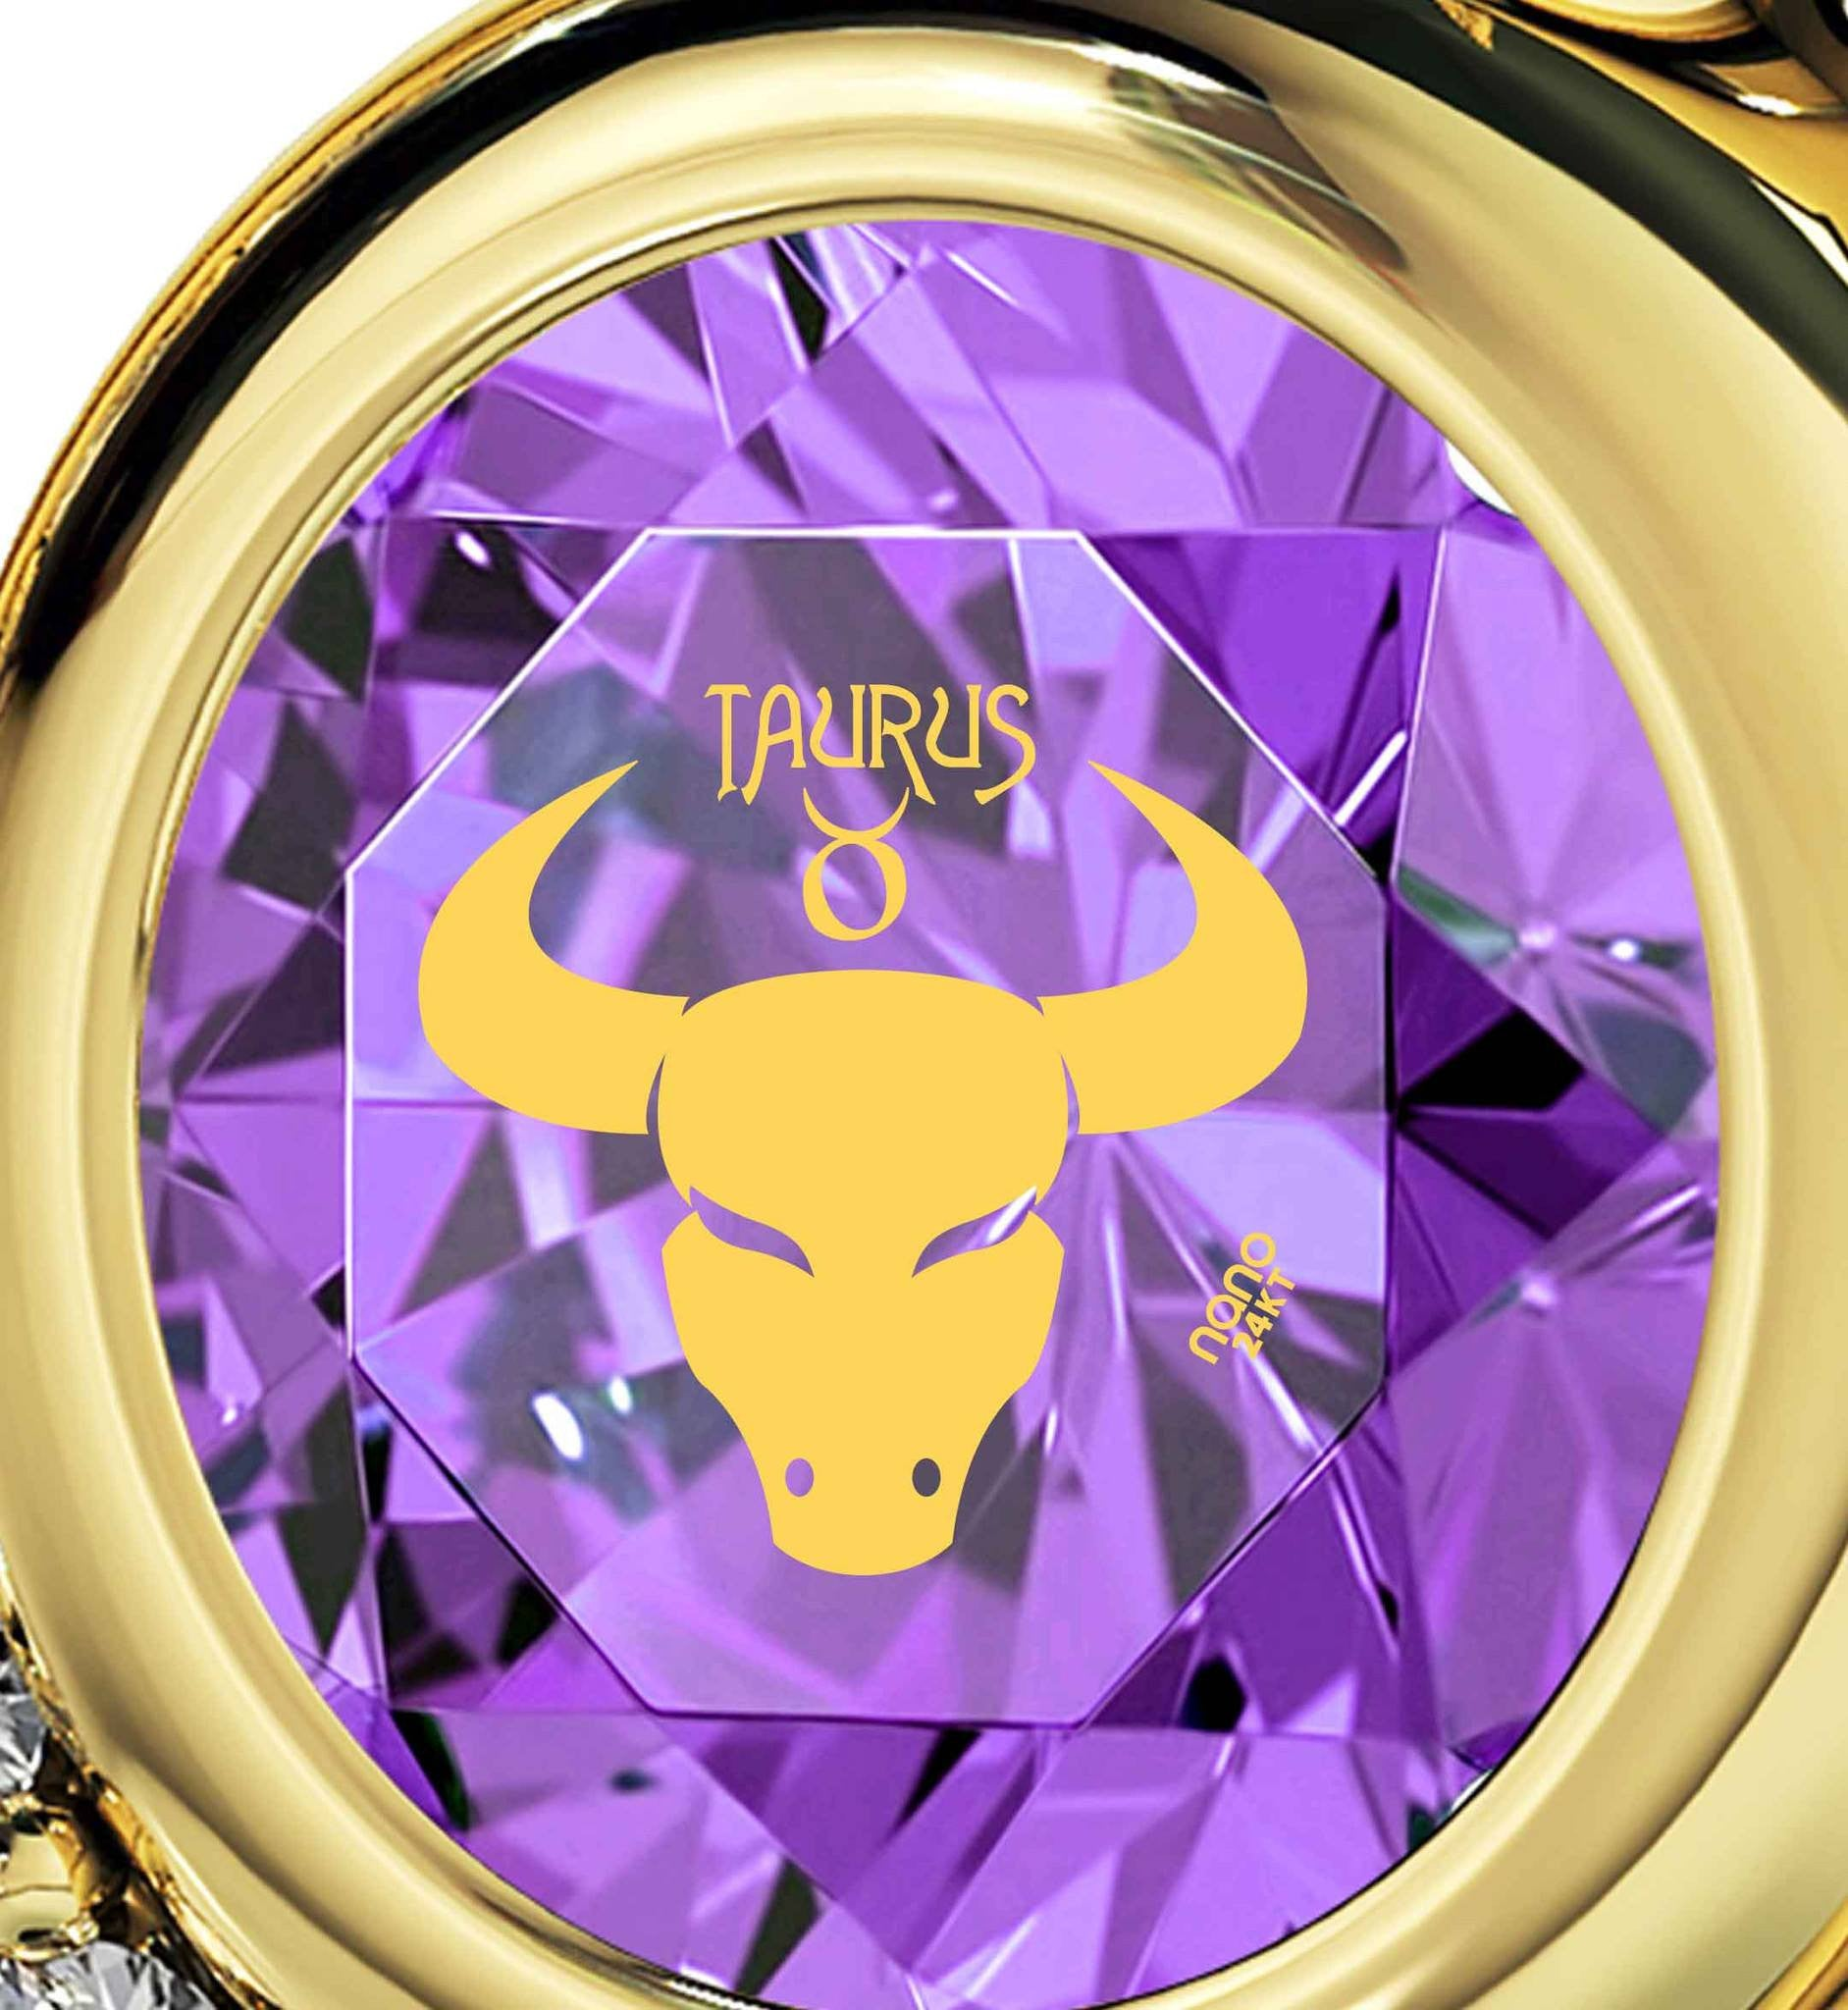 """Taurus Necklace With Zodiac Imprint, Top Gift Ideas for Women, Christmas Presents for Teenagers, 14k Gold Jewelry """